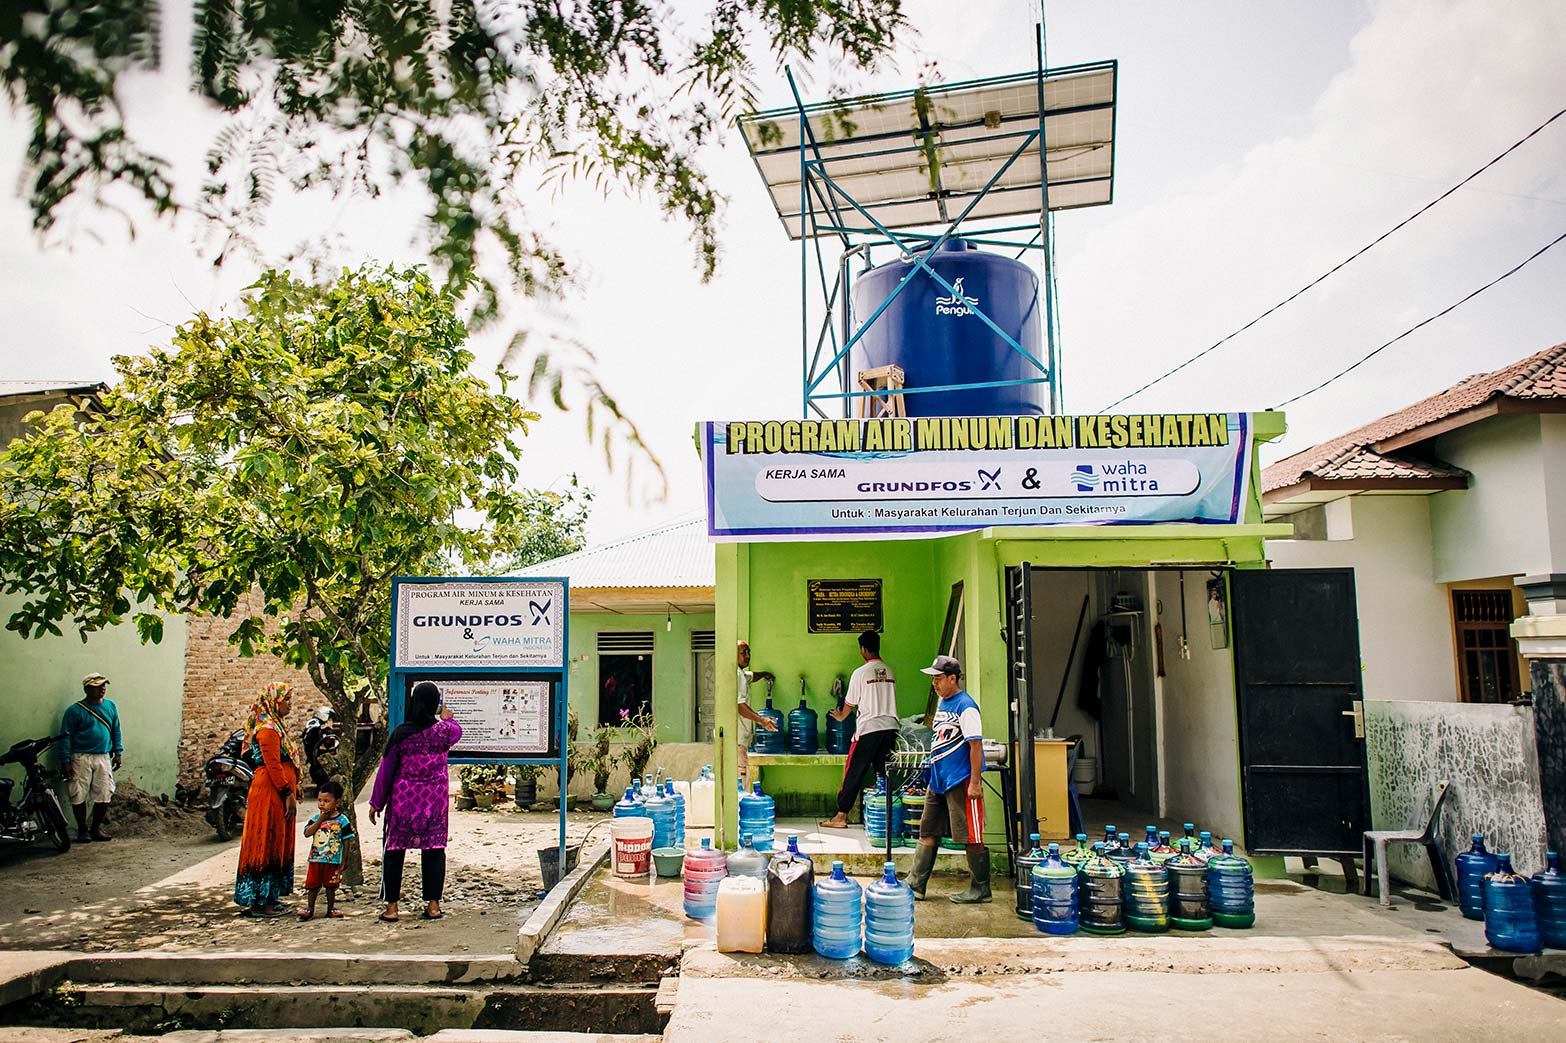 A Water Mission safe water treatment system provides safe water to an entire community in Indonesia.